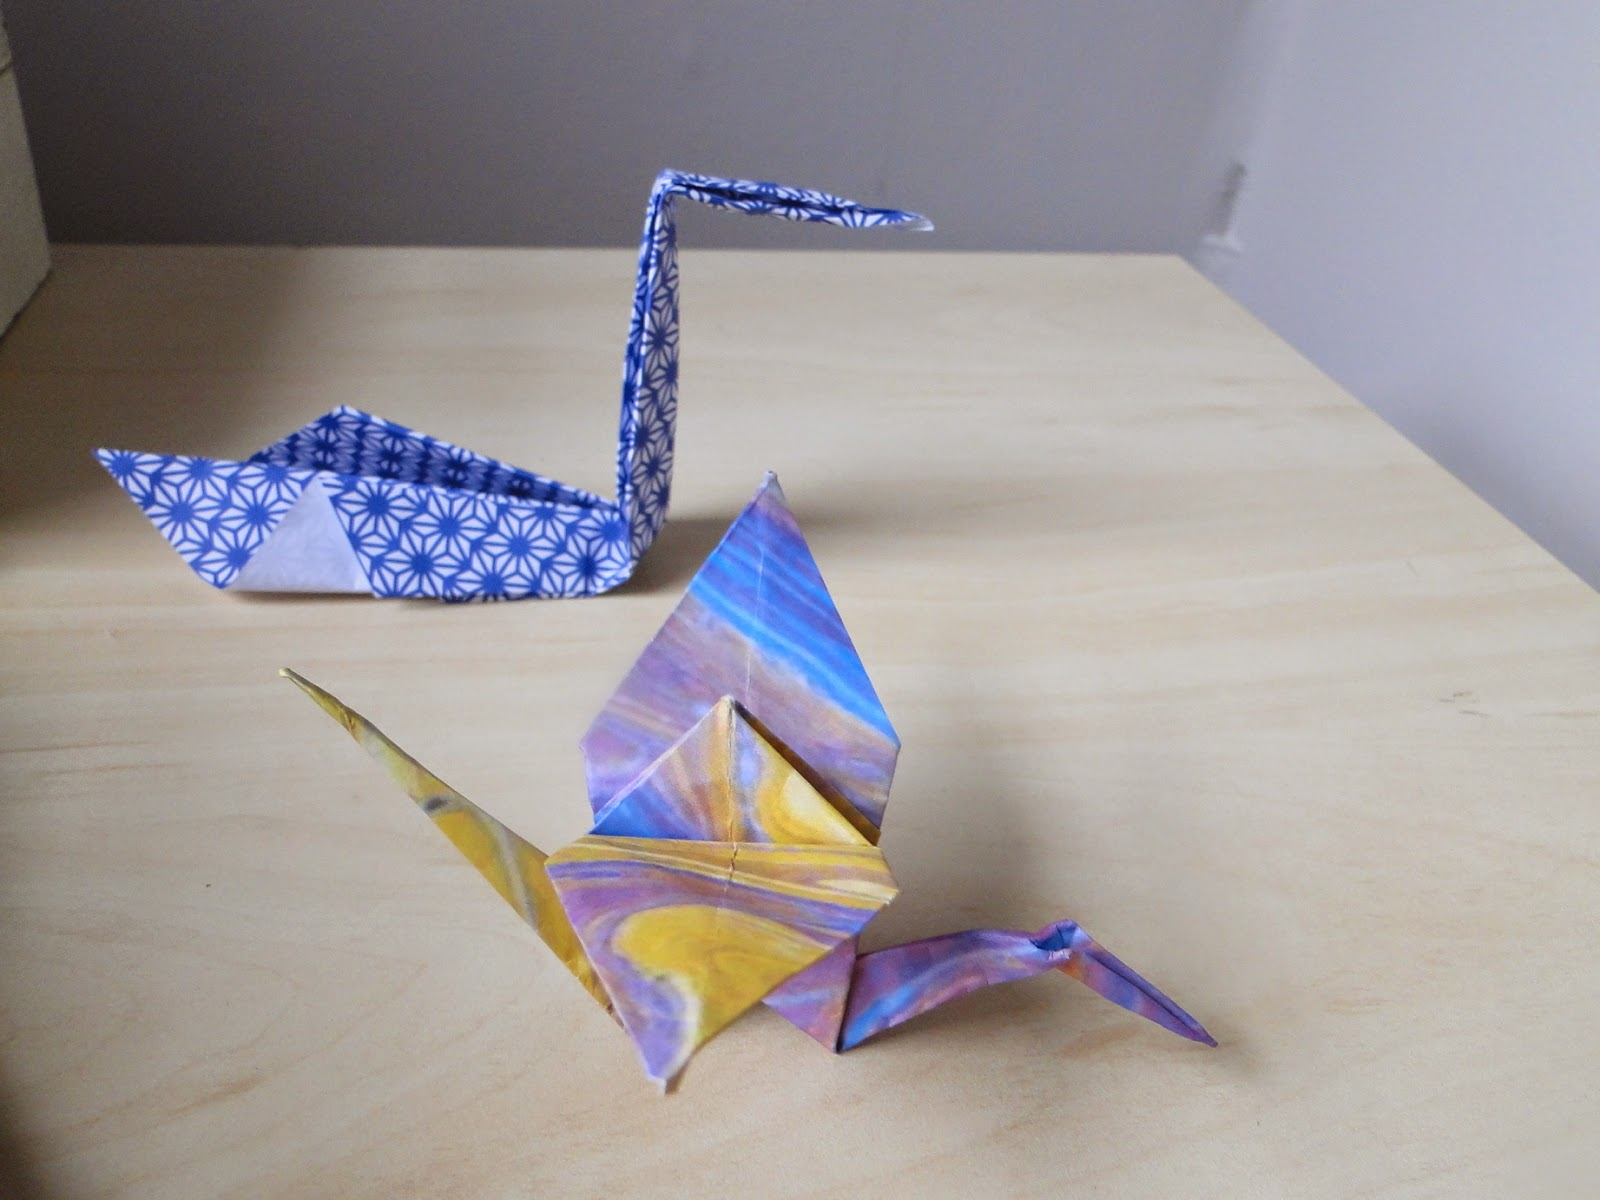 make easy origami crane ~ ideas art and craft projects - photo#47